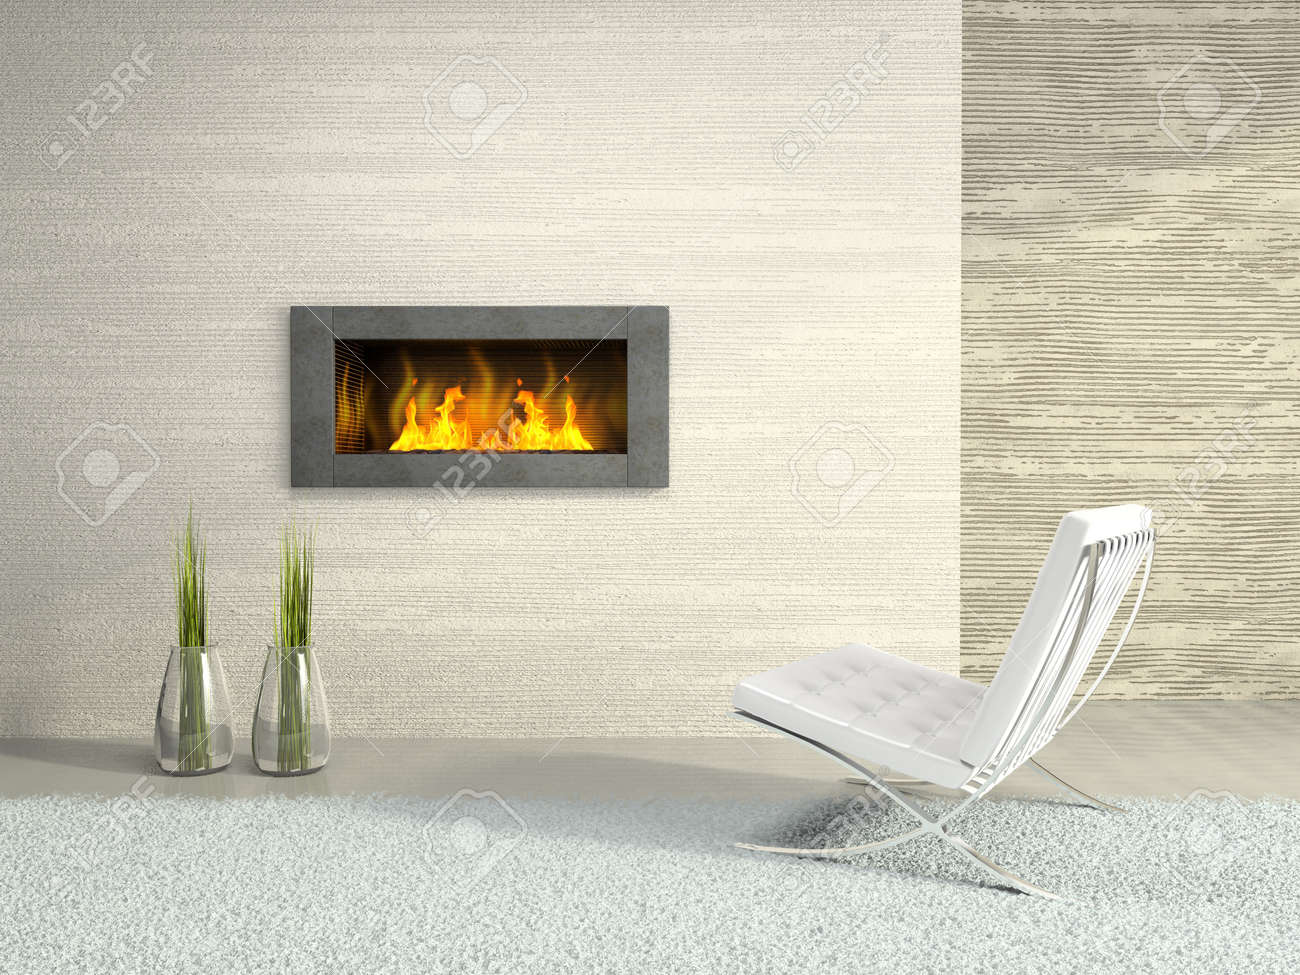 Part of the modern interior with fireplace 3D rendering Stock Photo - 4462530